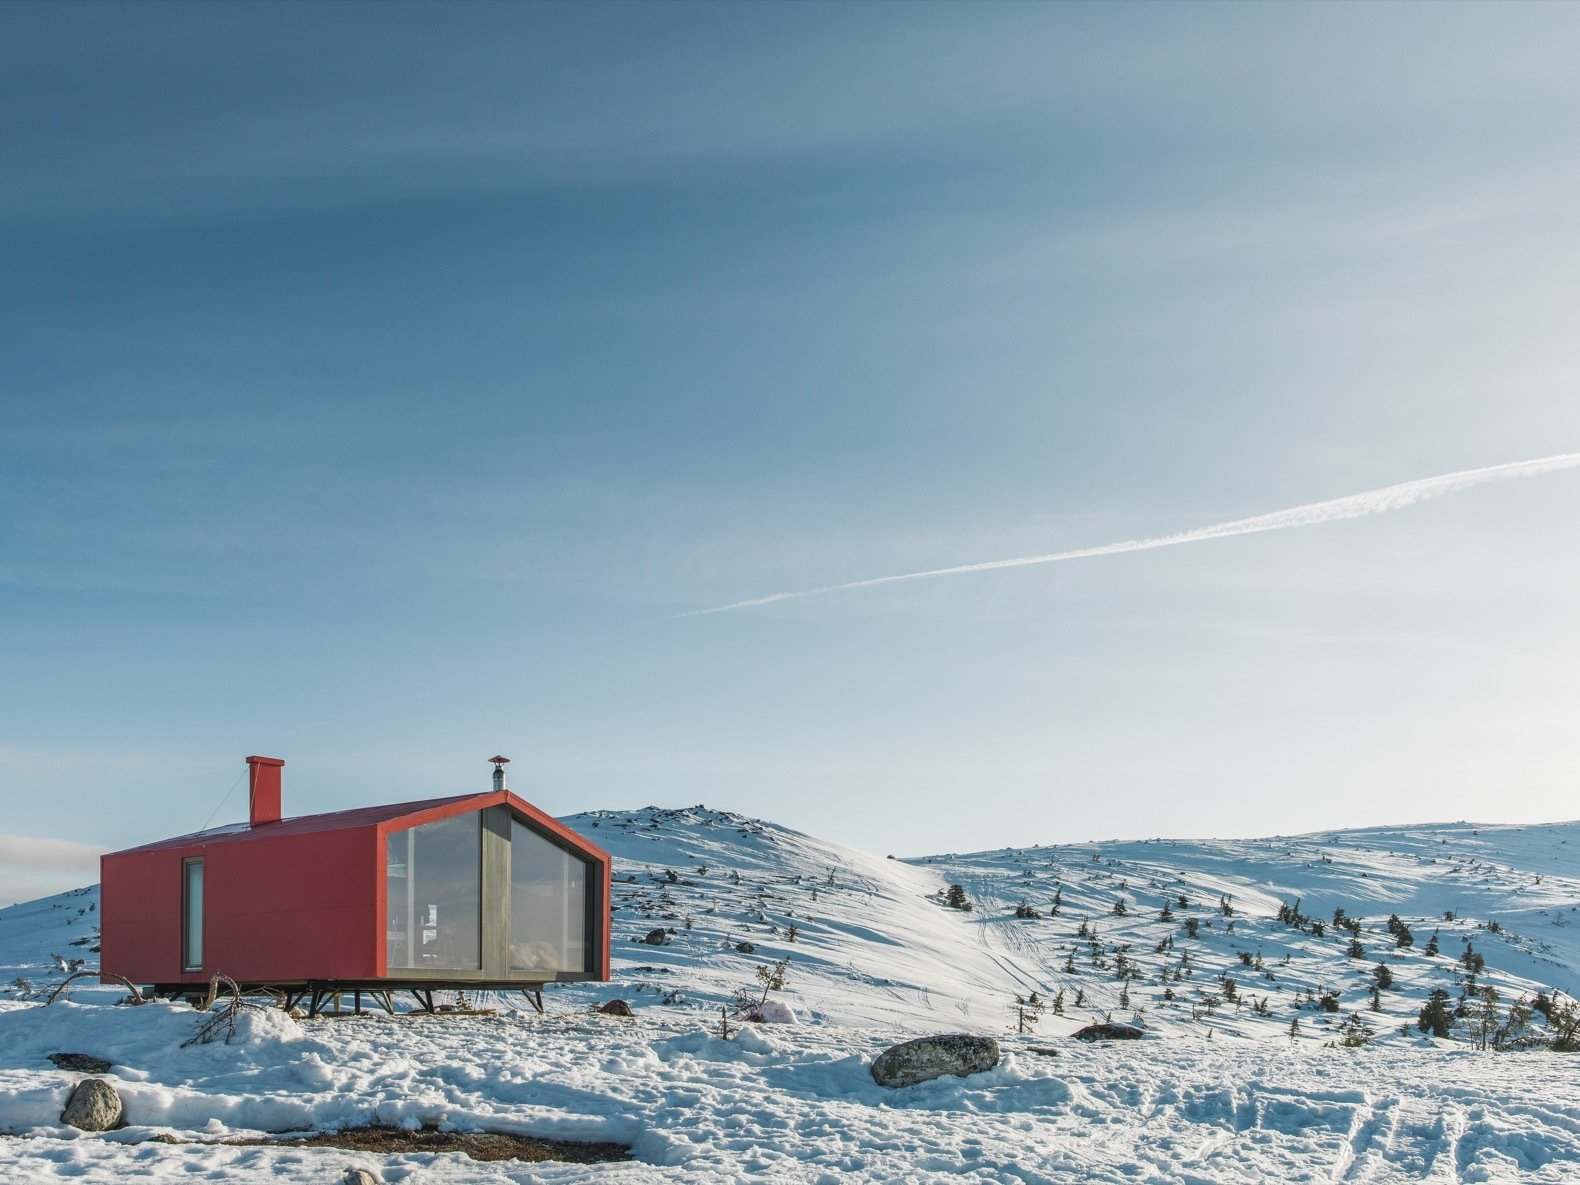 Exterior, Cabin, Gable, Metal, Metal, Prefab, and Small Home Red ALPOLIC aluminum composite panels have been used for the exterior cladding.    Best Exterior Cabin Small Home Gable Photos from Go Off-Grid in Russia With This Bright Red Prefab Cabin